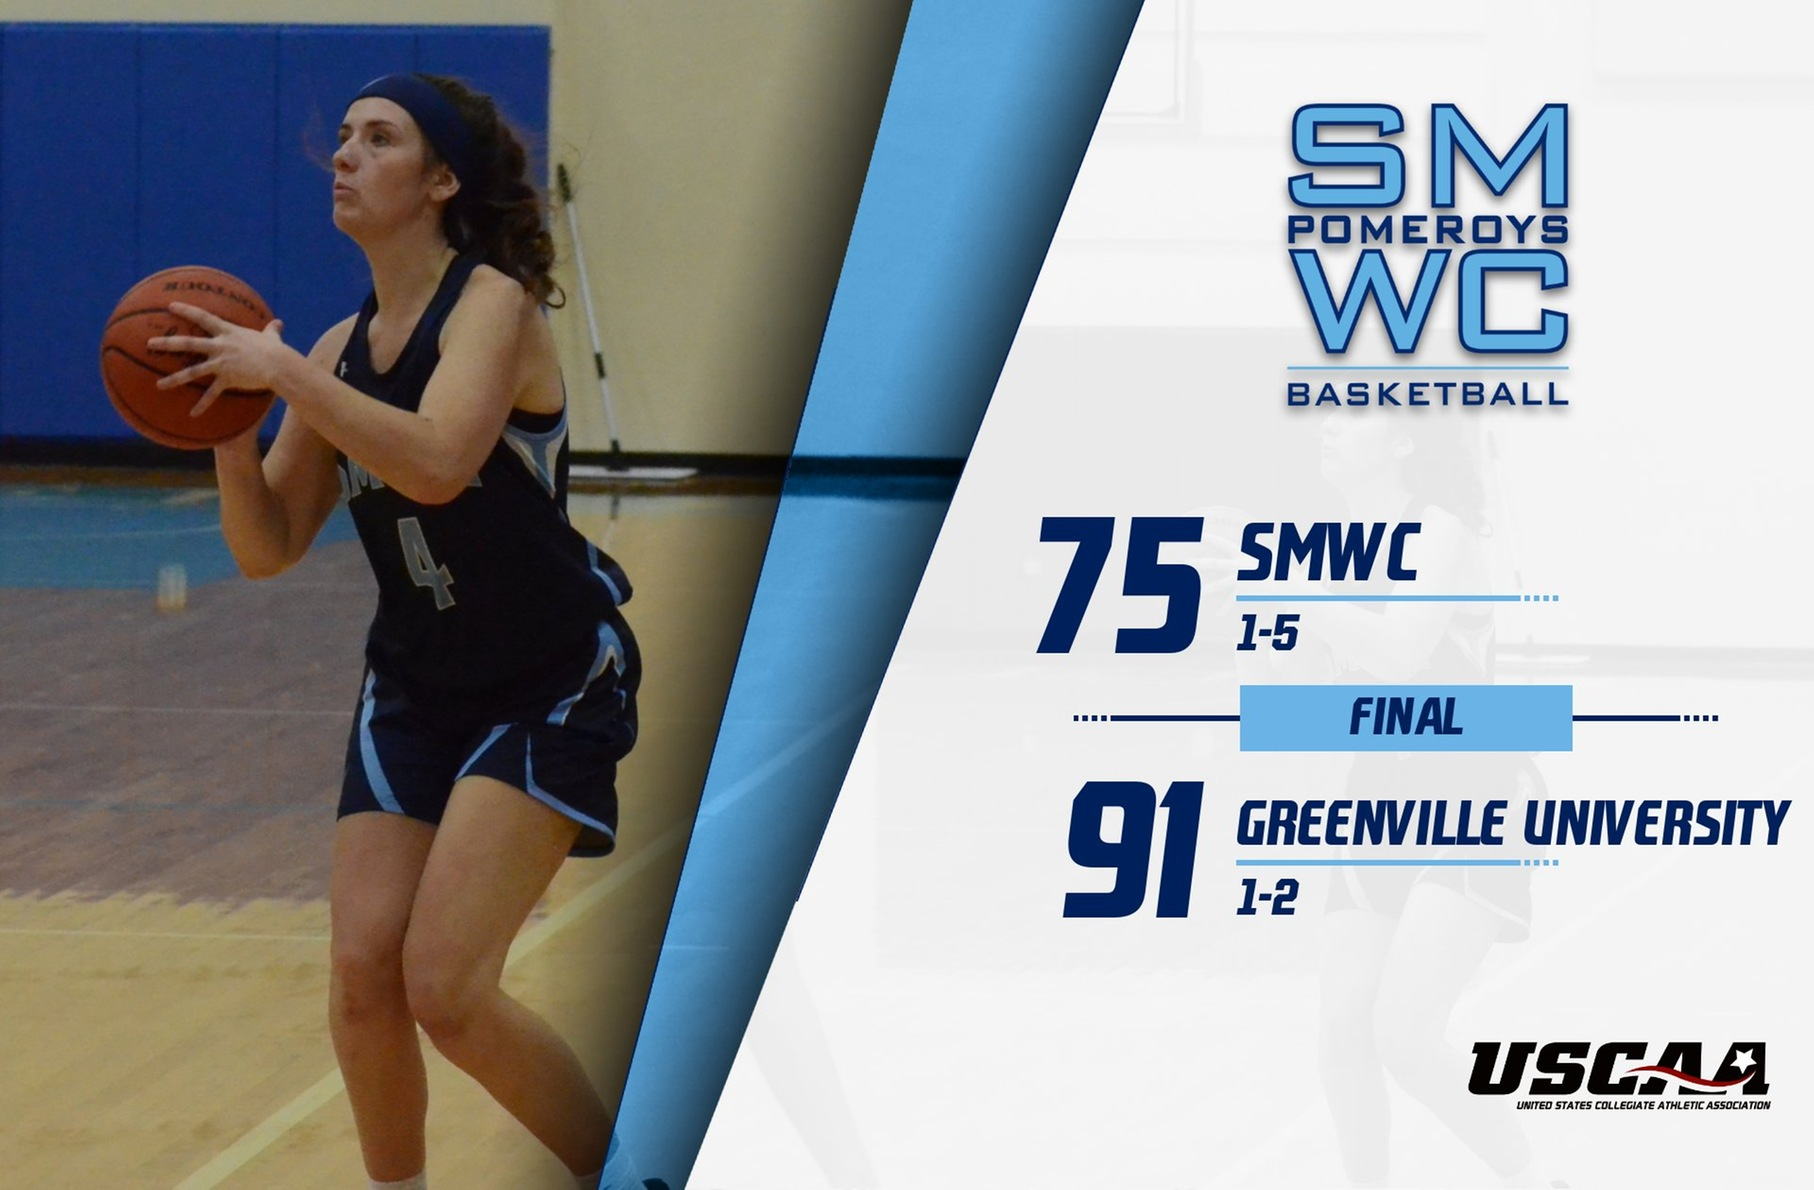 Fouls Trip Up SMWC, Fall to Greenville 91-75